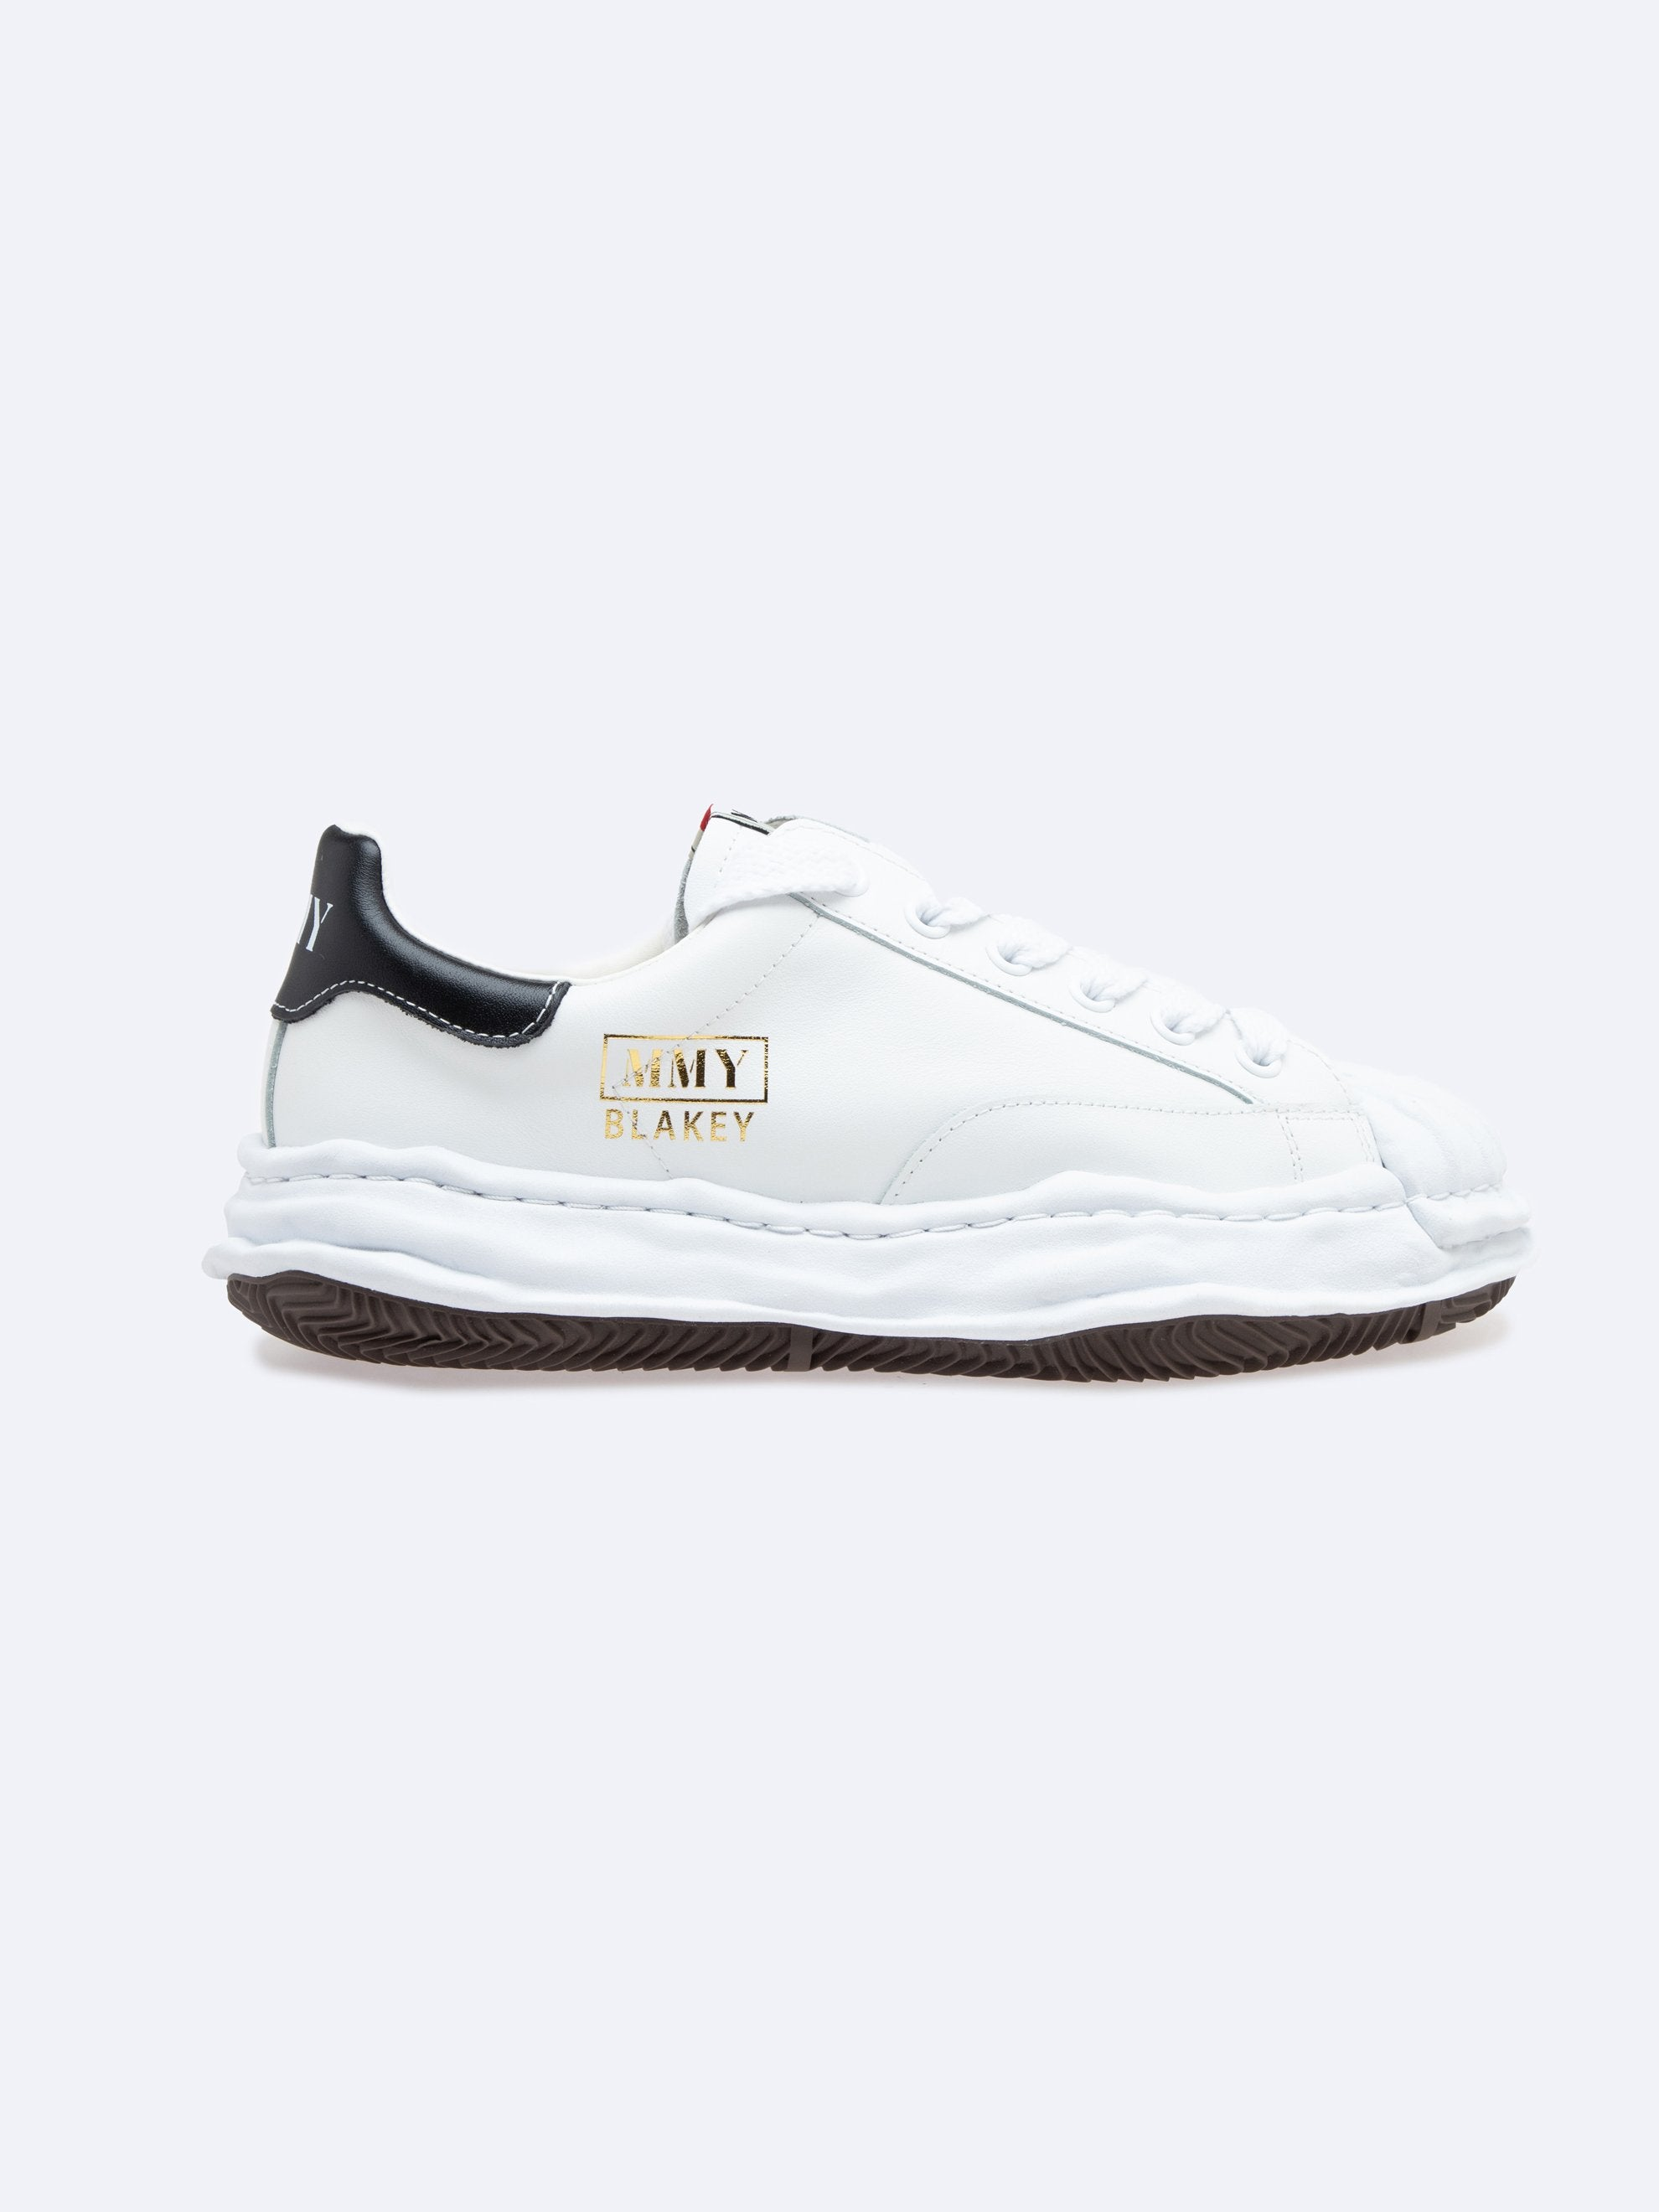 White Blakey Low Original Sole Leather Sneaker 1